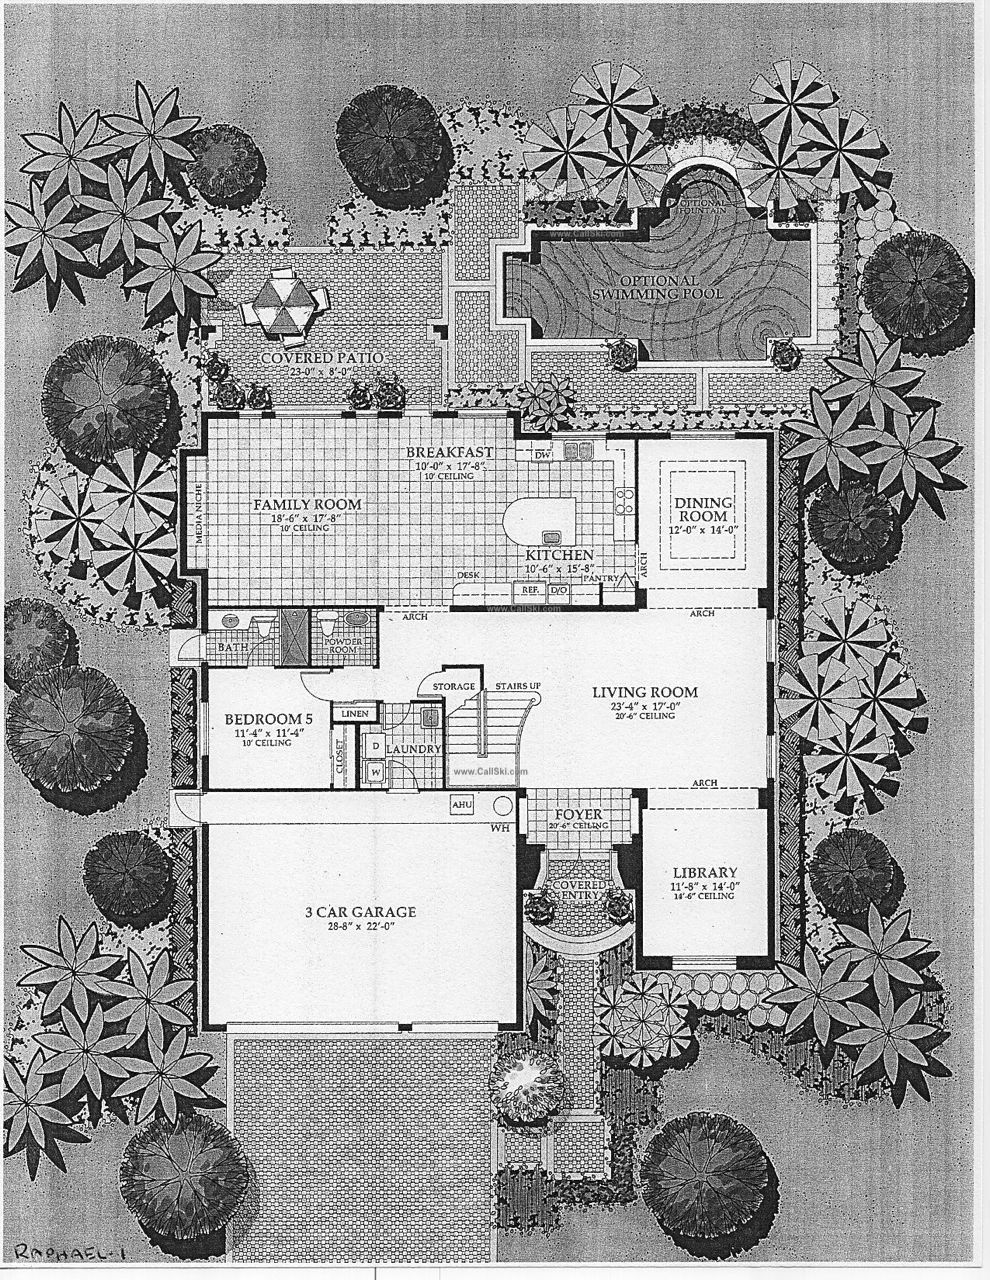 Highland Ranch Estates Floor Plans And Community